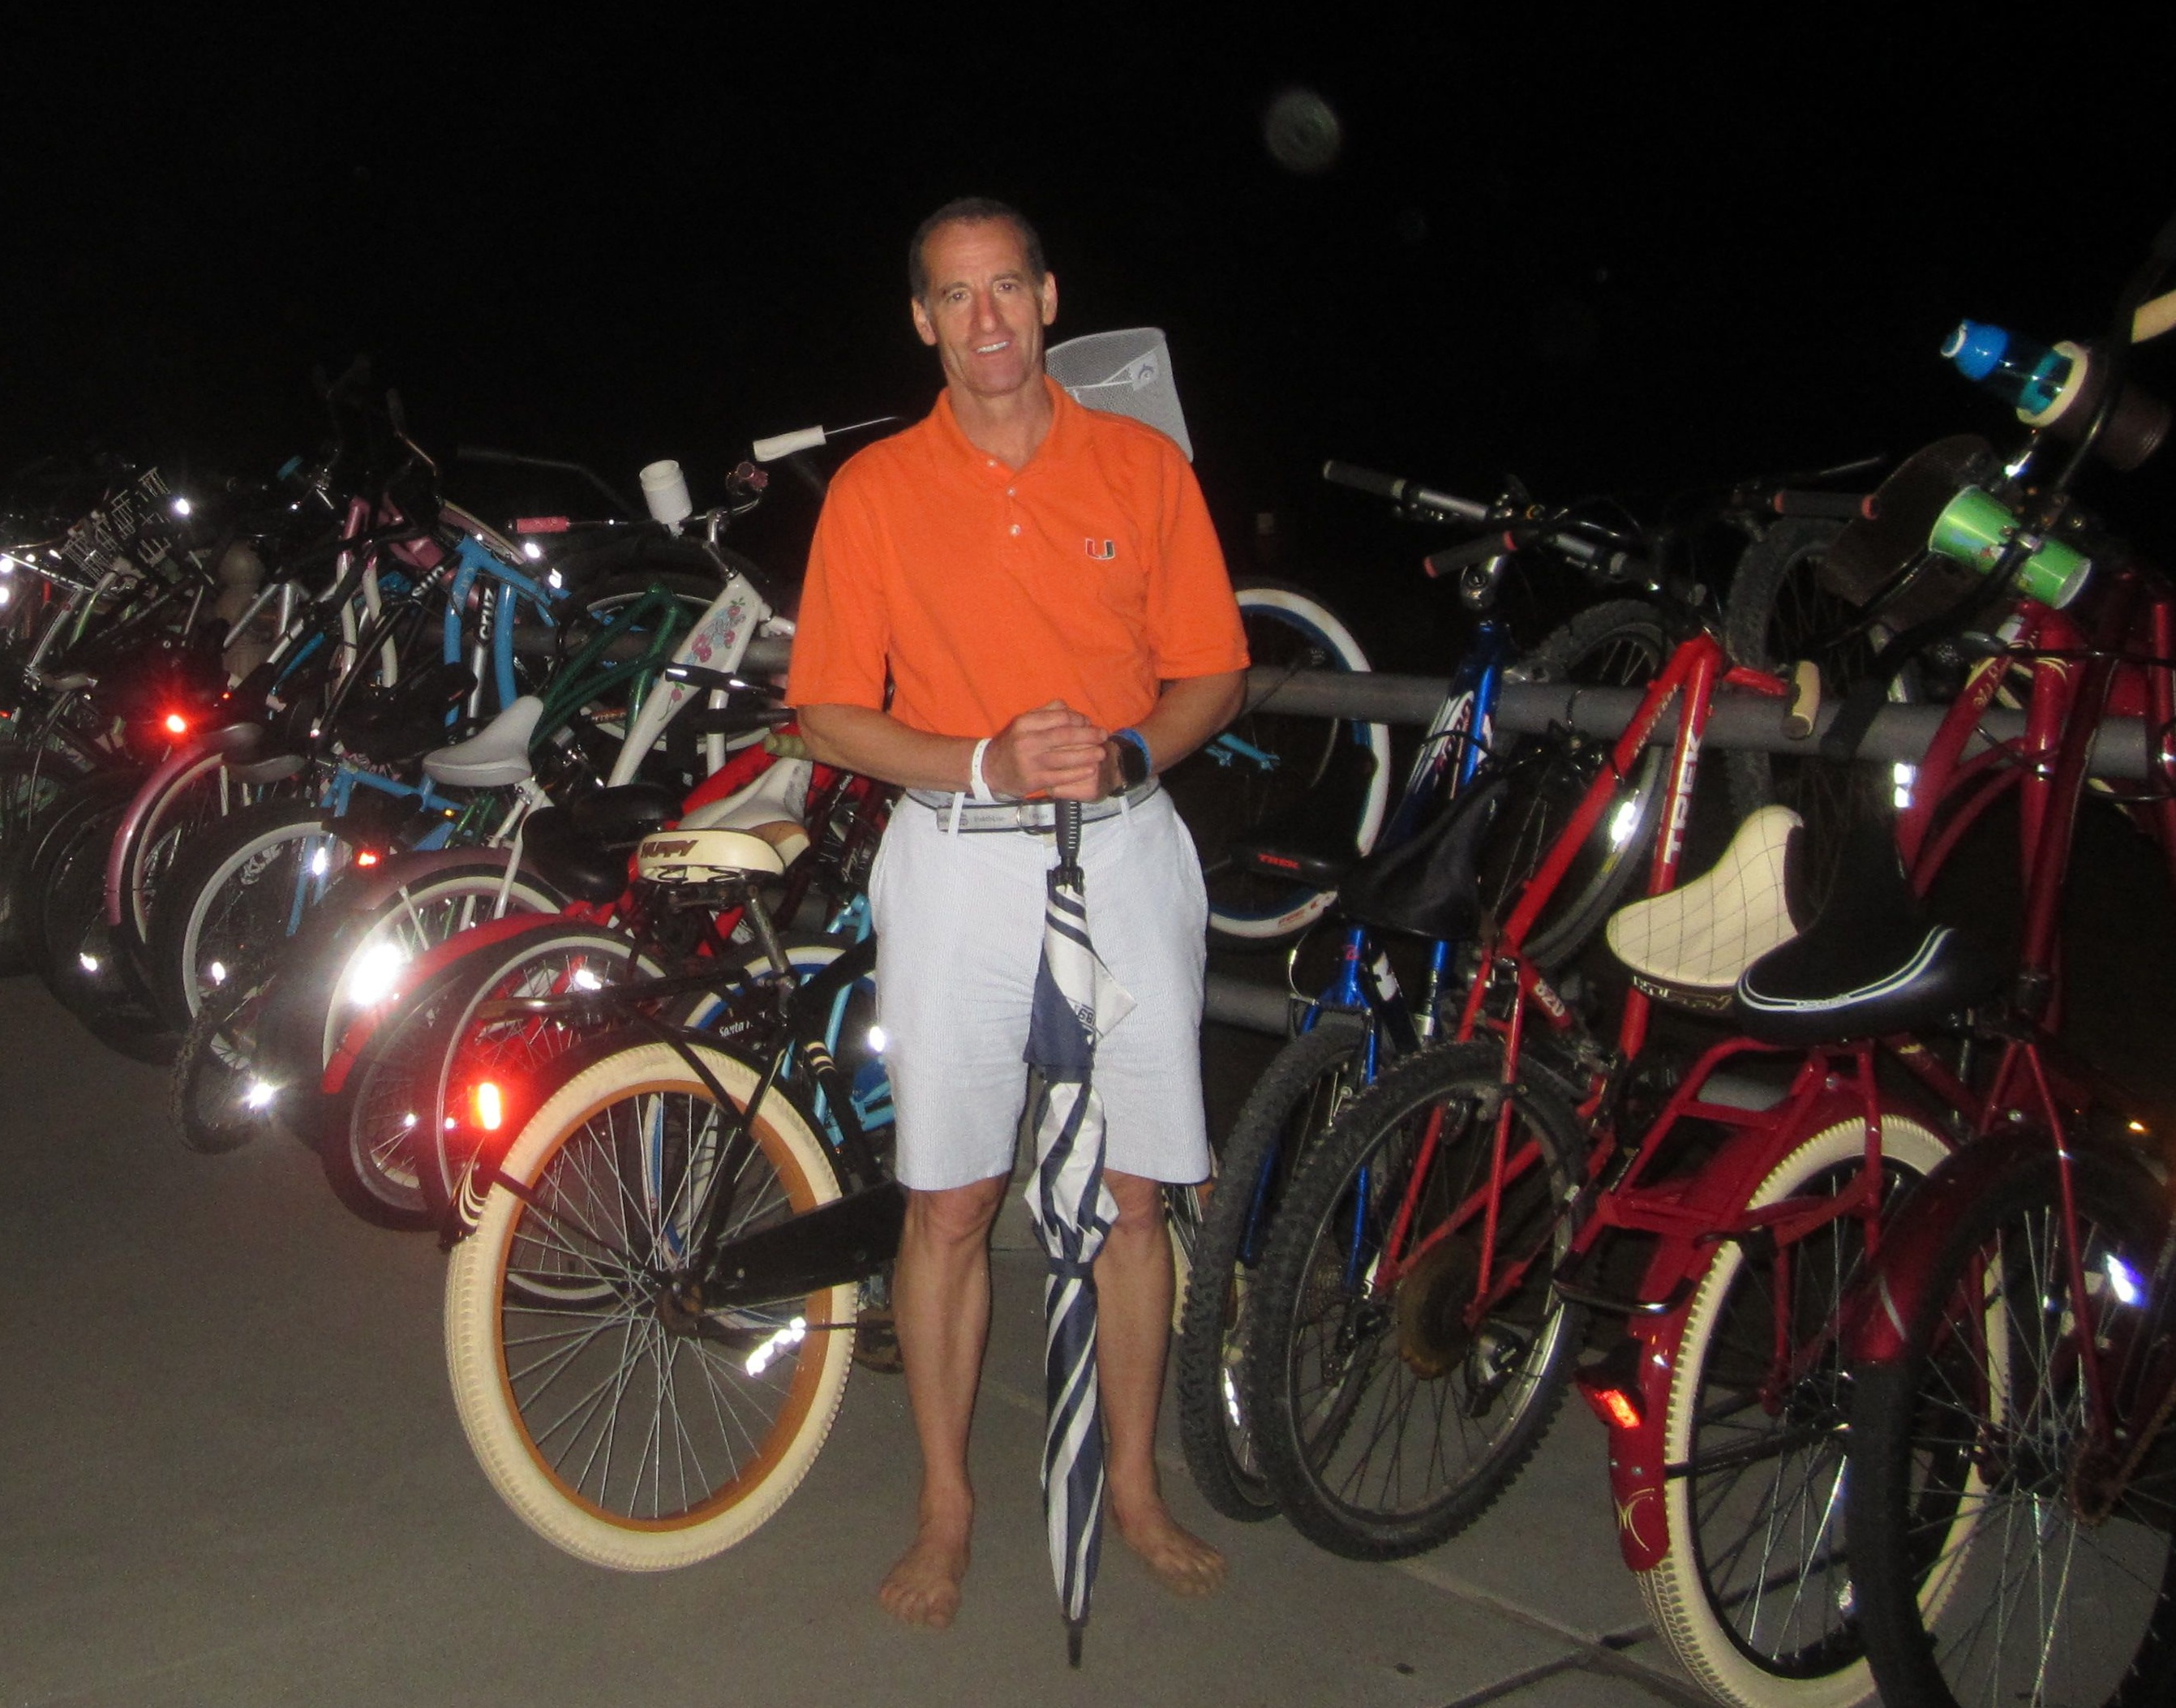 Riding Bikes At Night Is A Por Summer Activity The Boardwalk